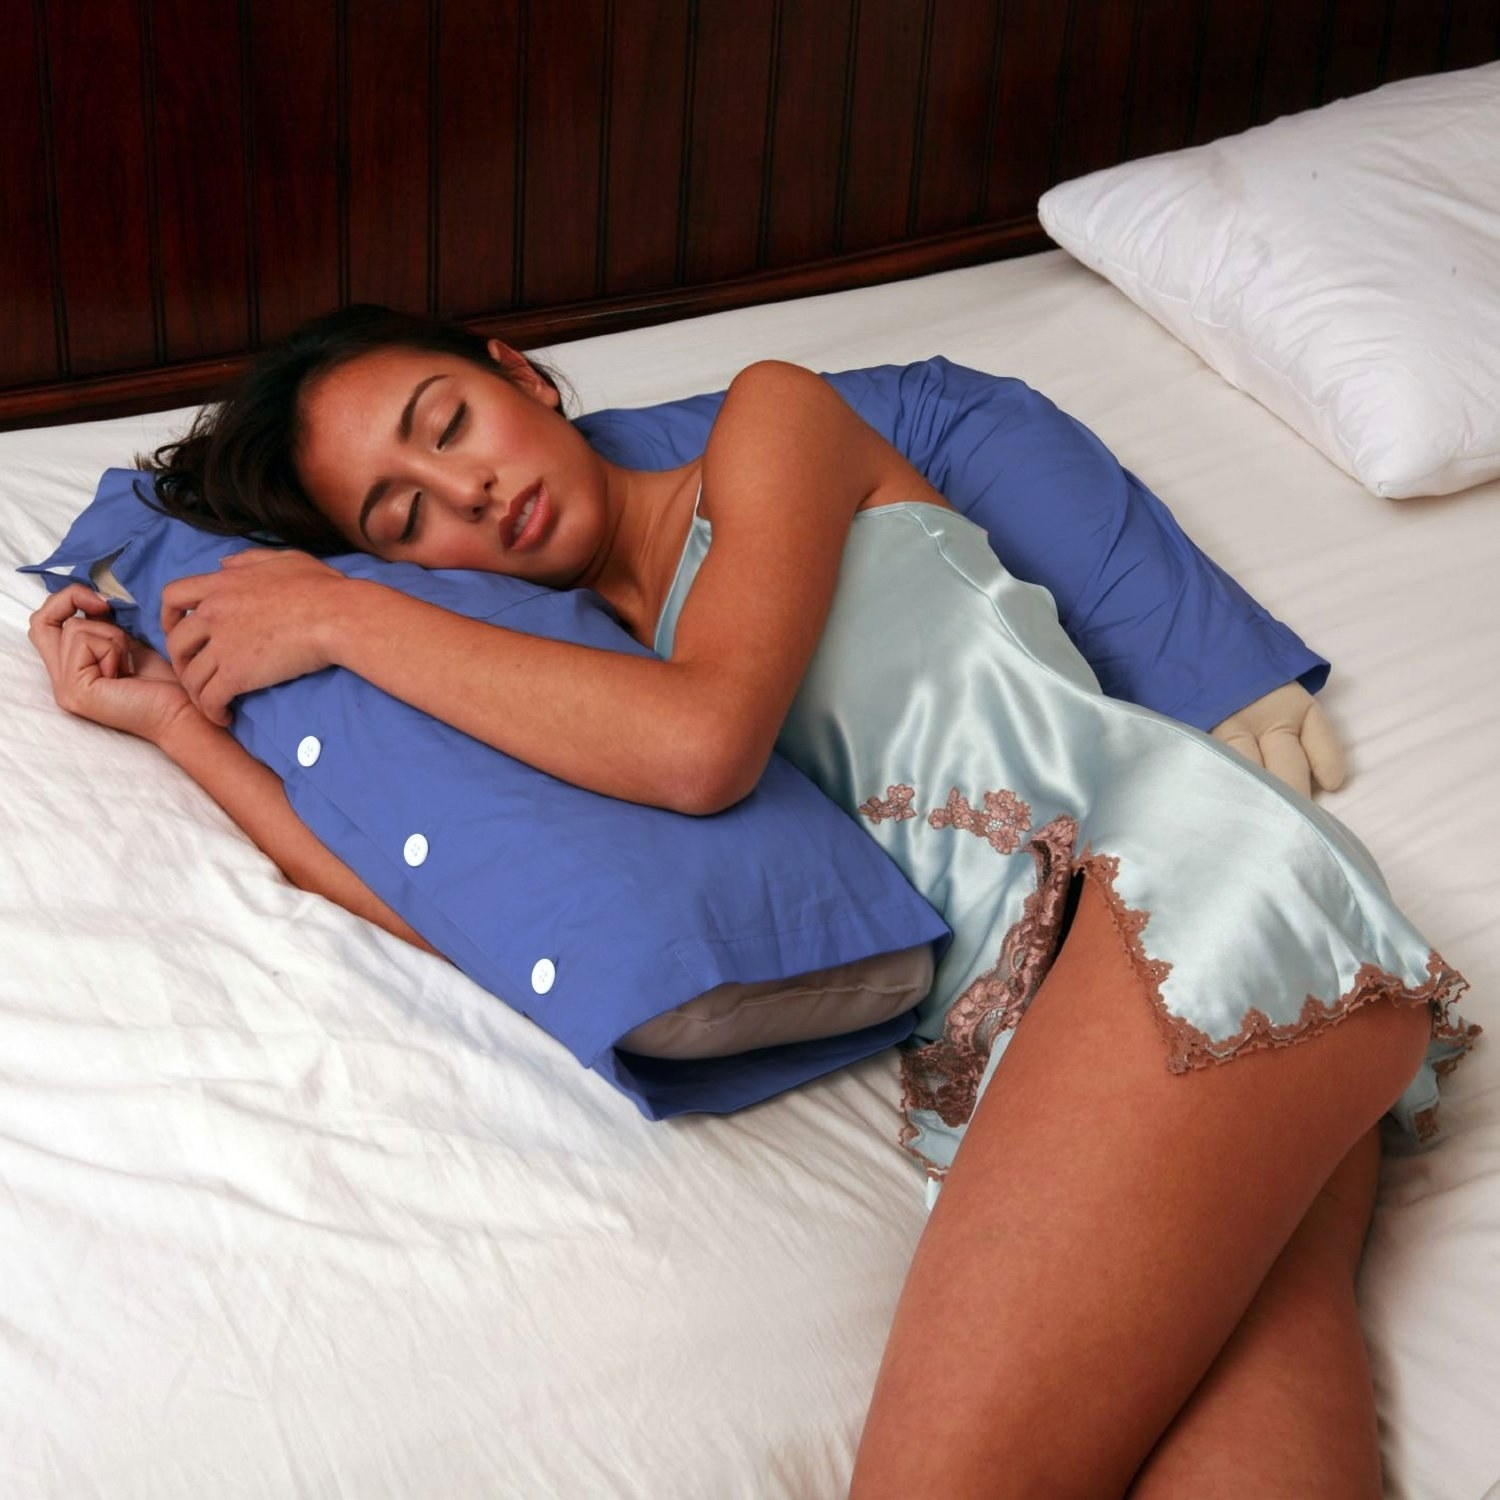 19 body pillows to cuddle instead of an